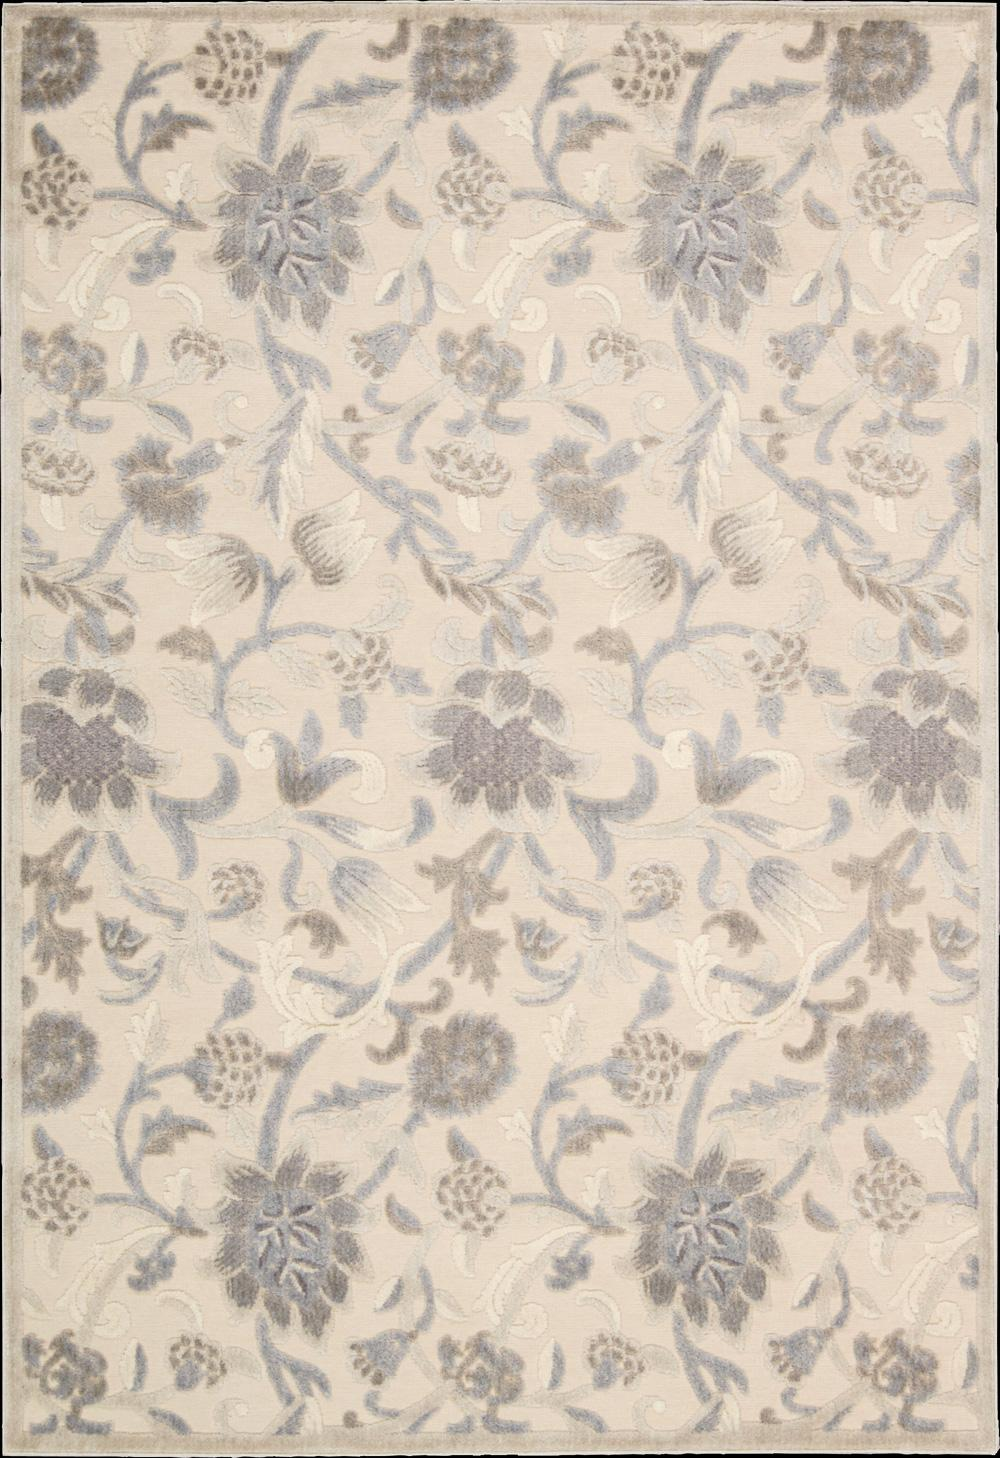 "Nourison Graphic Illusions Area Rug 7'9"" x 10'10"" - Item Number: 13123"